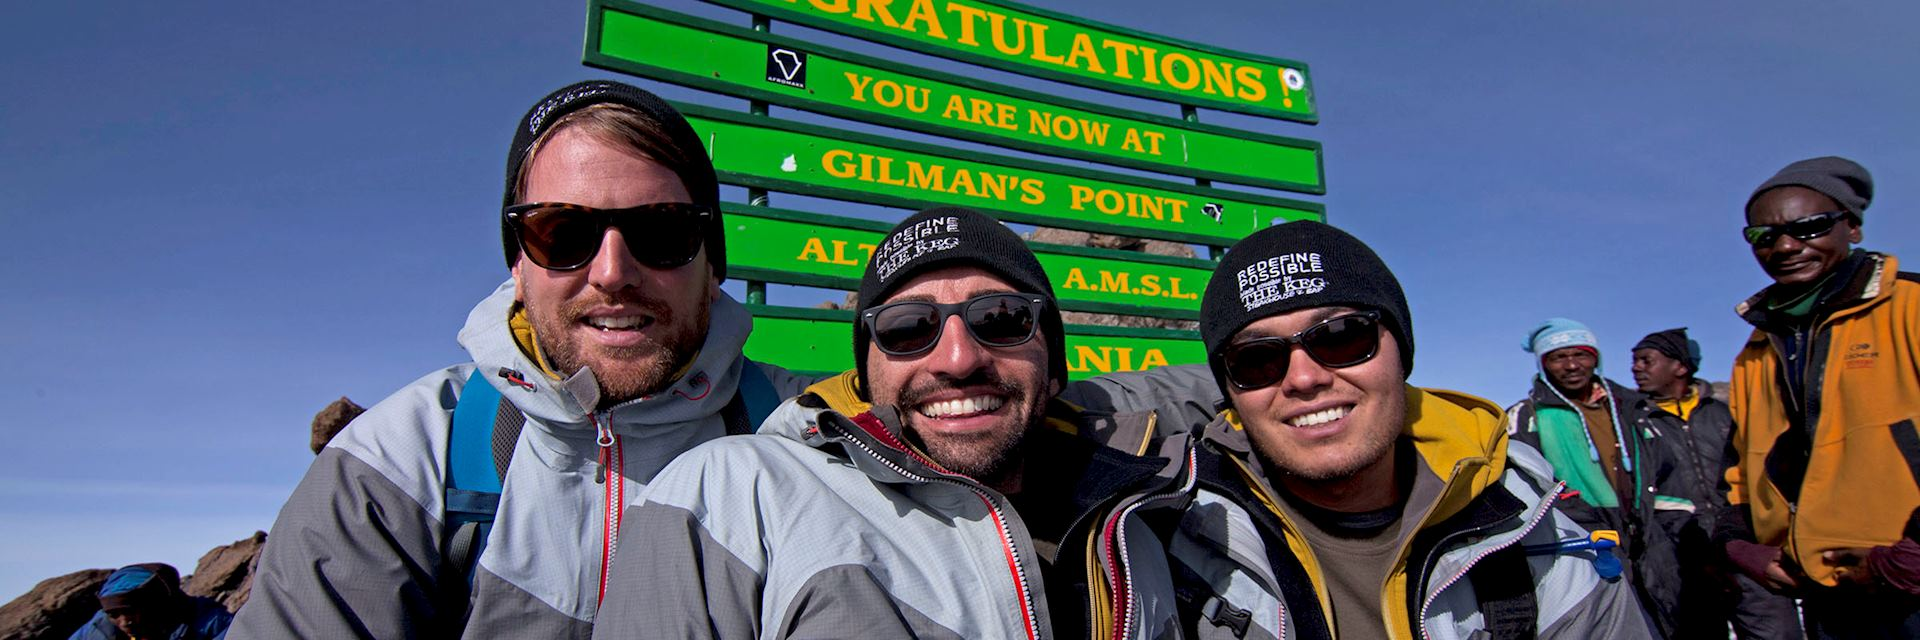 Spencer West (middle) celebrates reaching the top of Mount Kilimanjaro